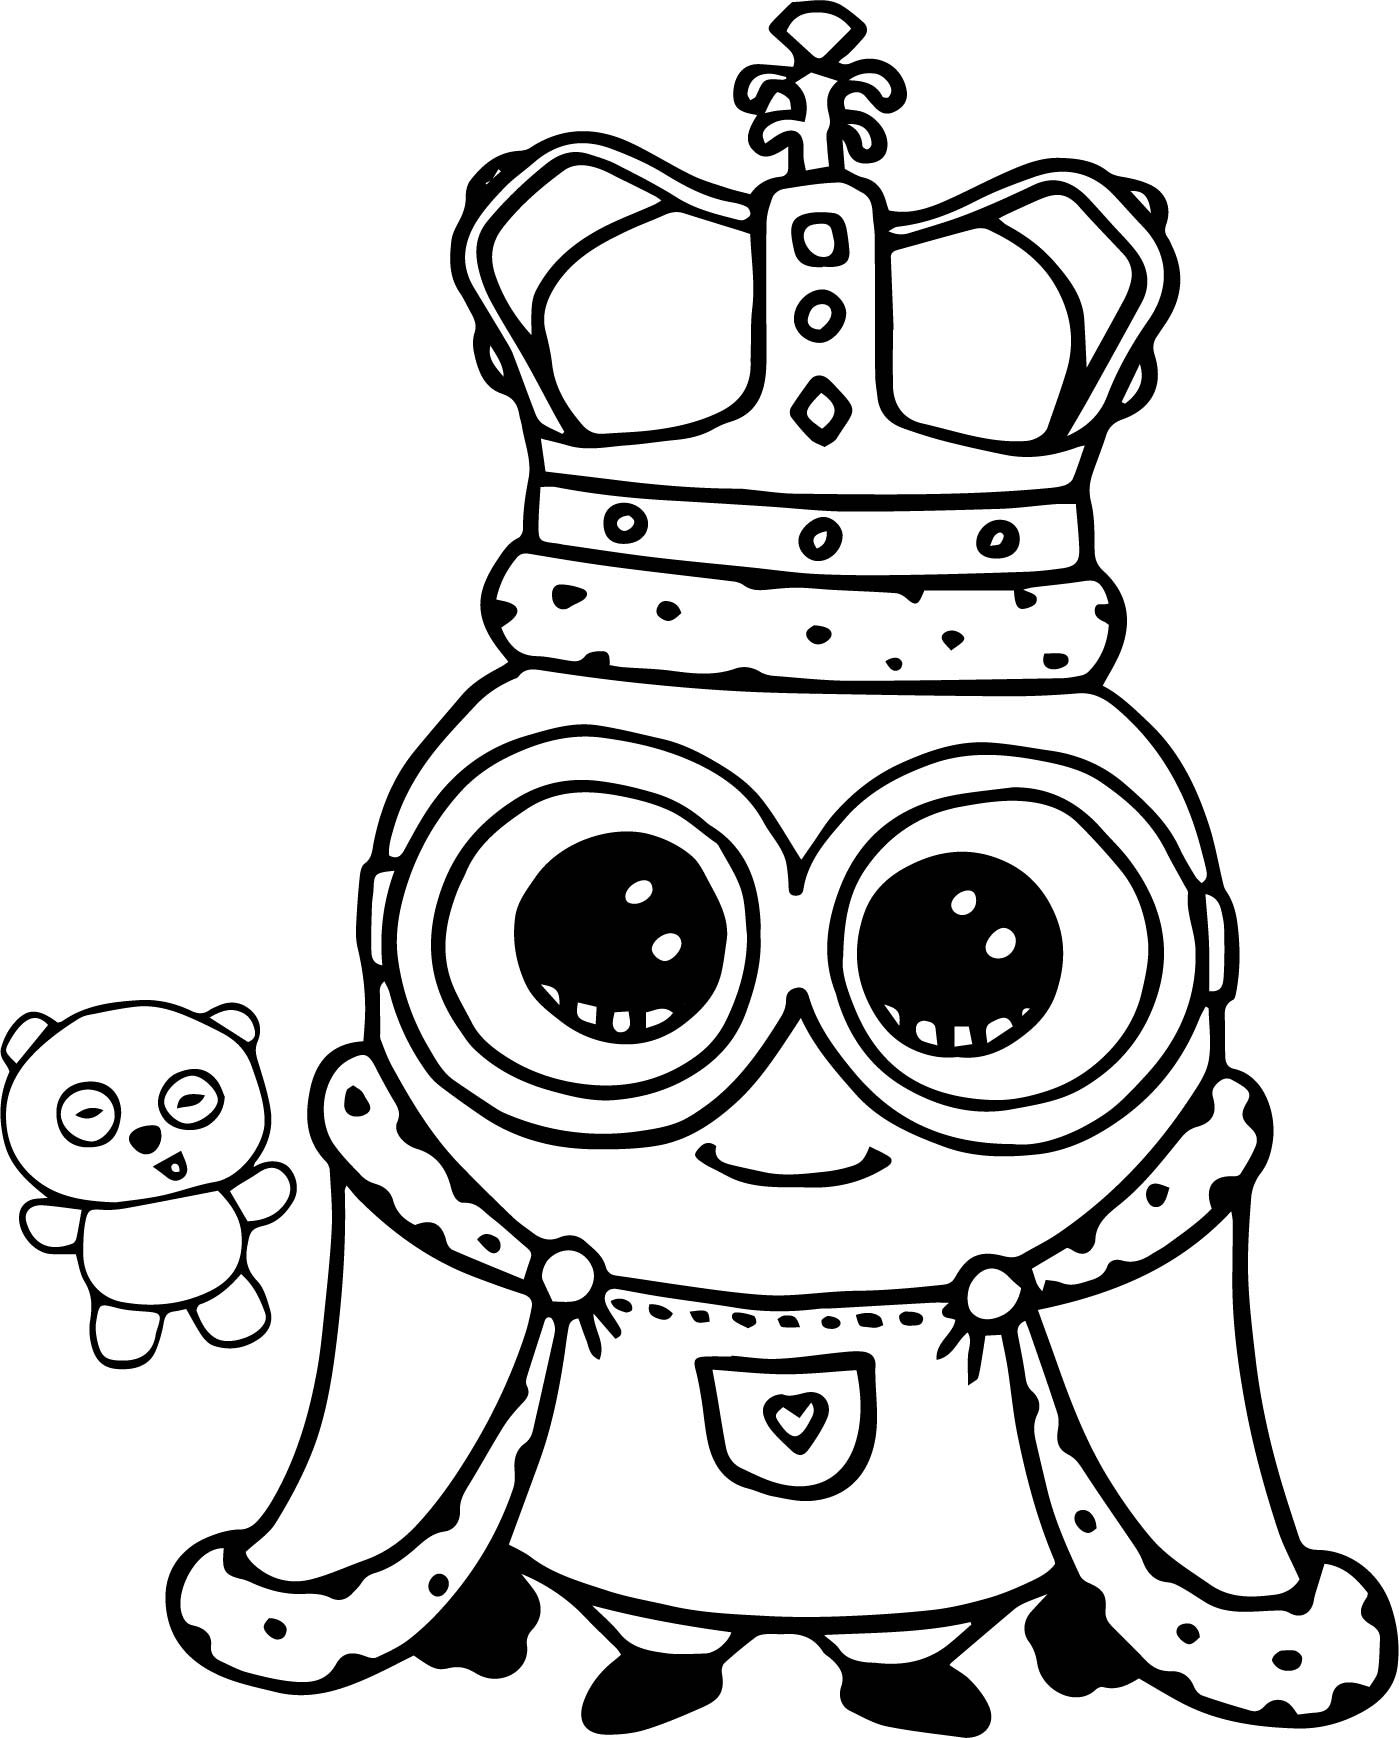 Cute Coloring Pages  Minion King Bob Cute Coloring Page